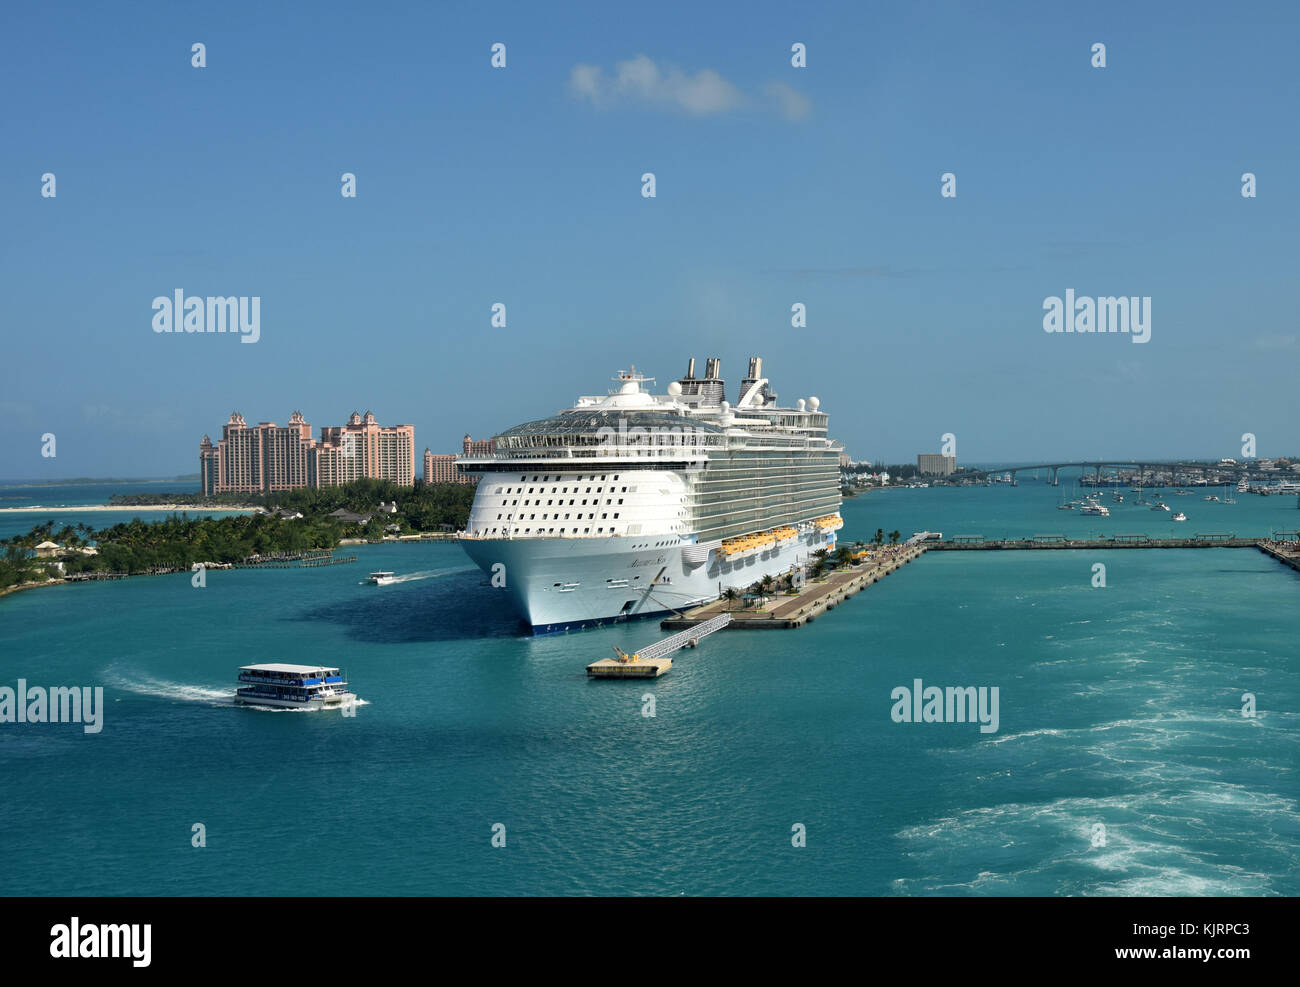 Nassau, Bahamas - December 21, 2015: Royal Caribbean megaship Allure of the Sears prepares for departure from Nassau - Stock Image